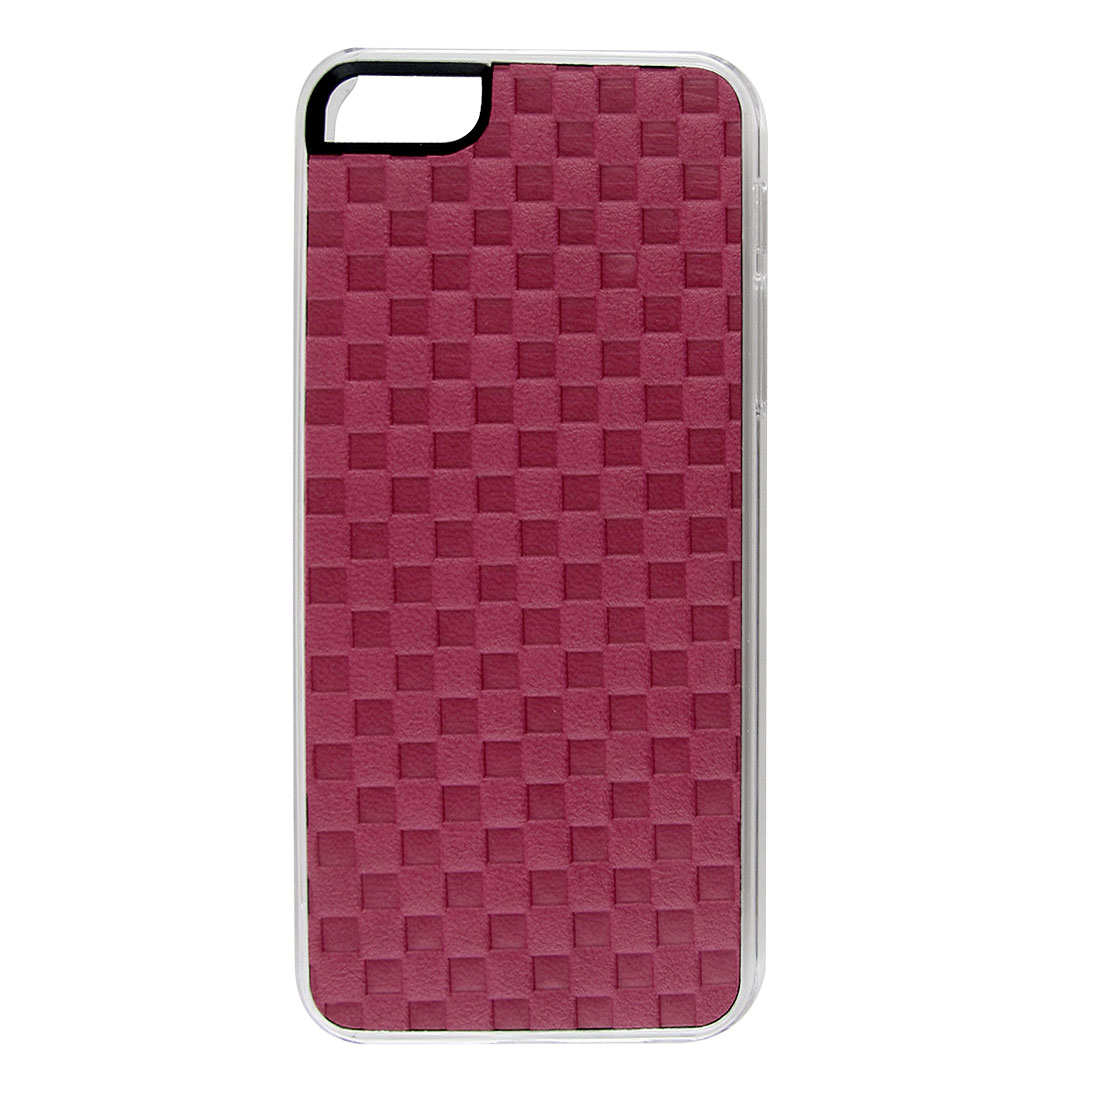 Fuchsia Faux Leather Coated Check Hard Back Case Cover for Apple iPhone 5 5G 5th